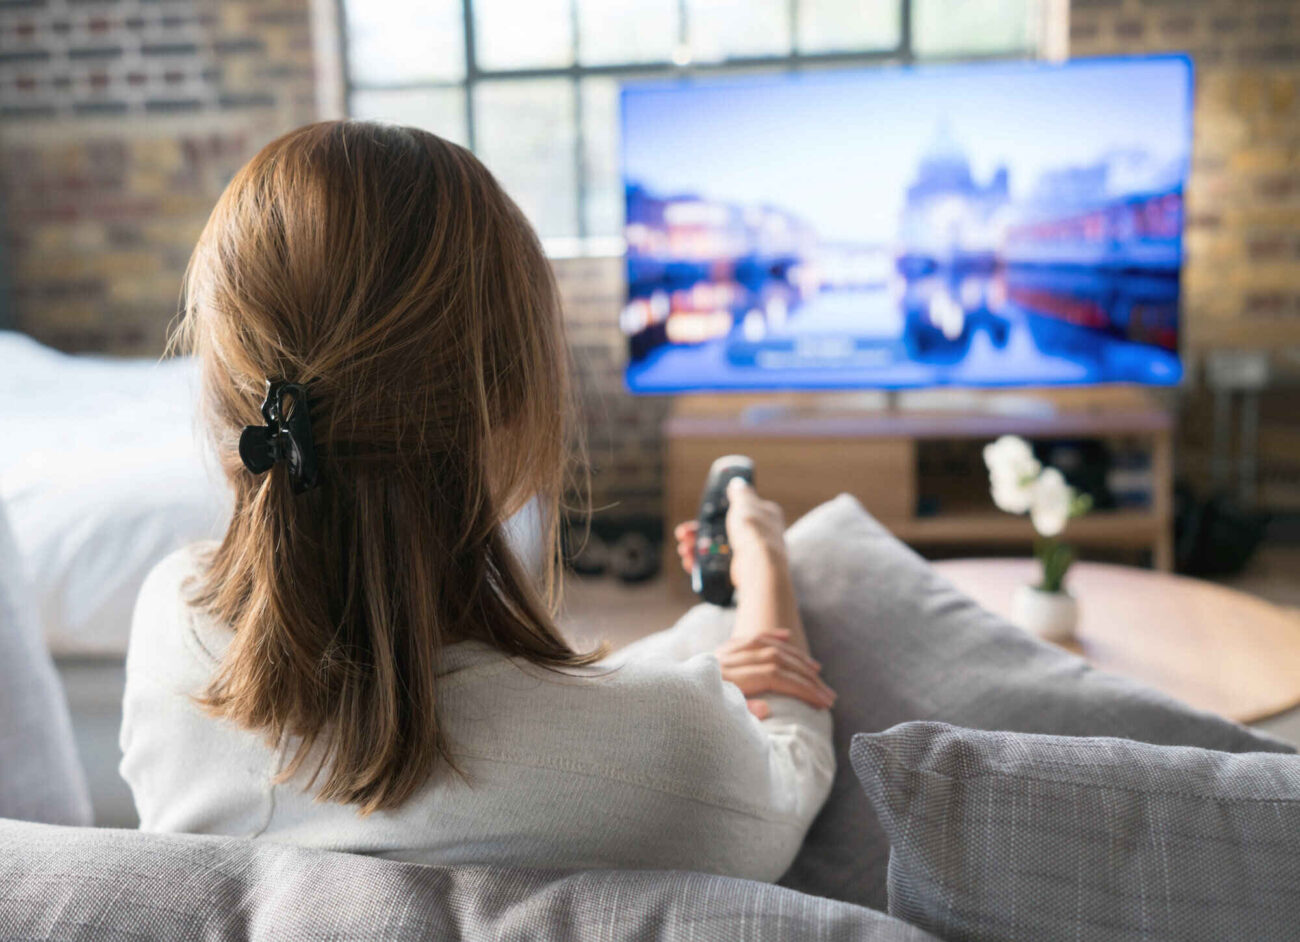 Want to make the most out of using HBO Max on services like Hulu or Amazon? Find out how to get the best streaming experience possible here.